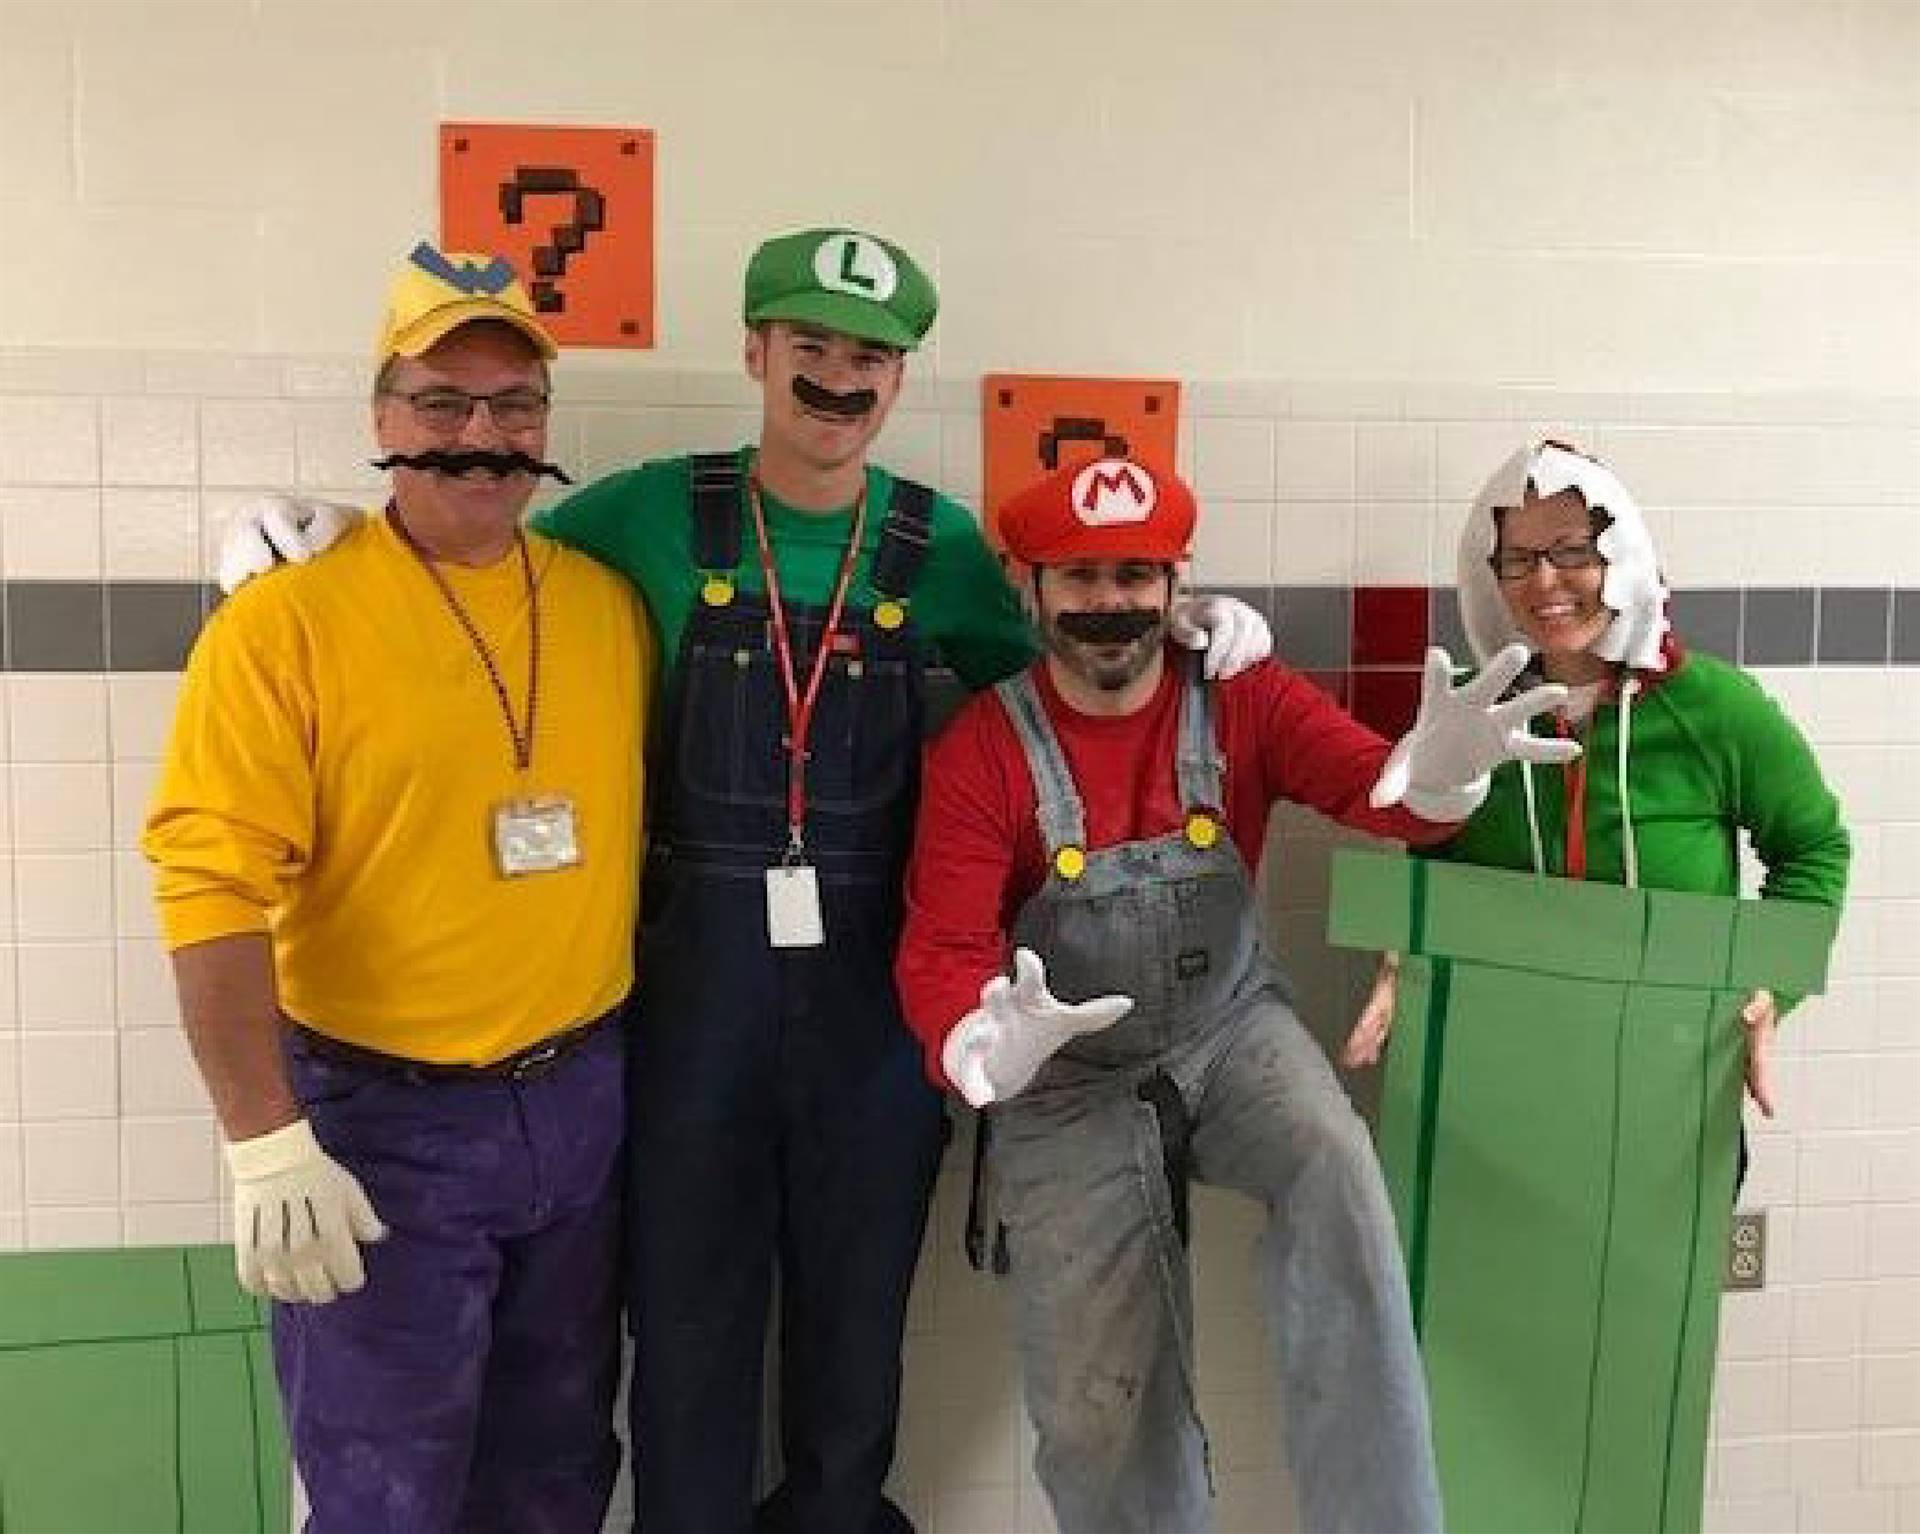 teachers dressed as mario characters